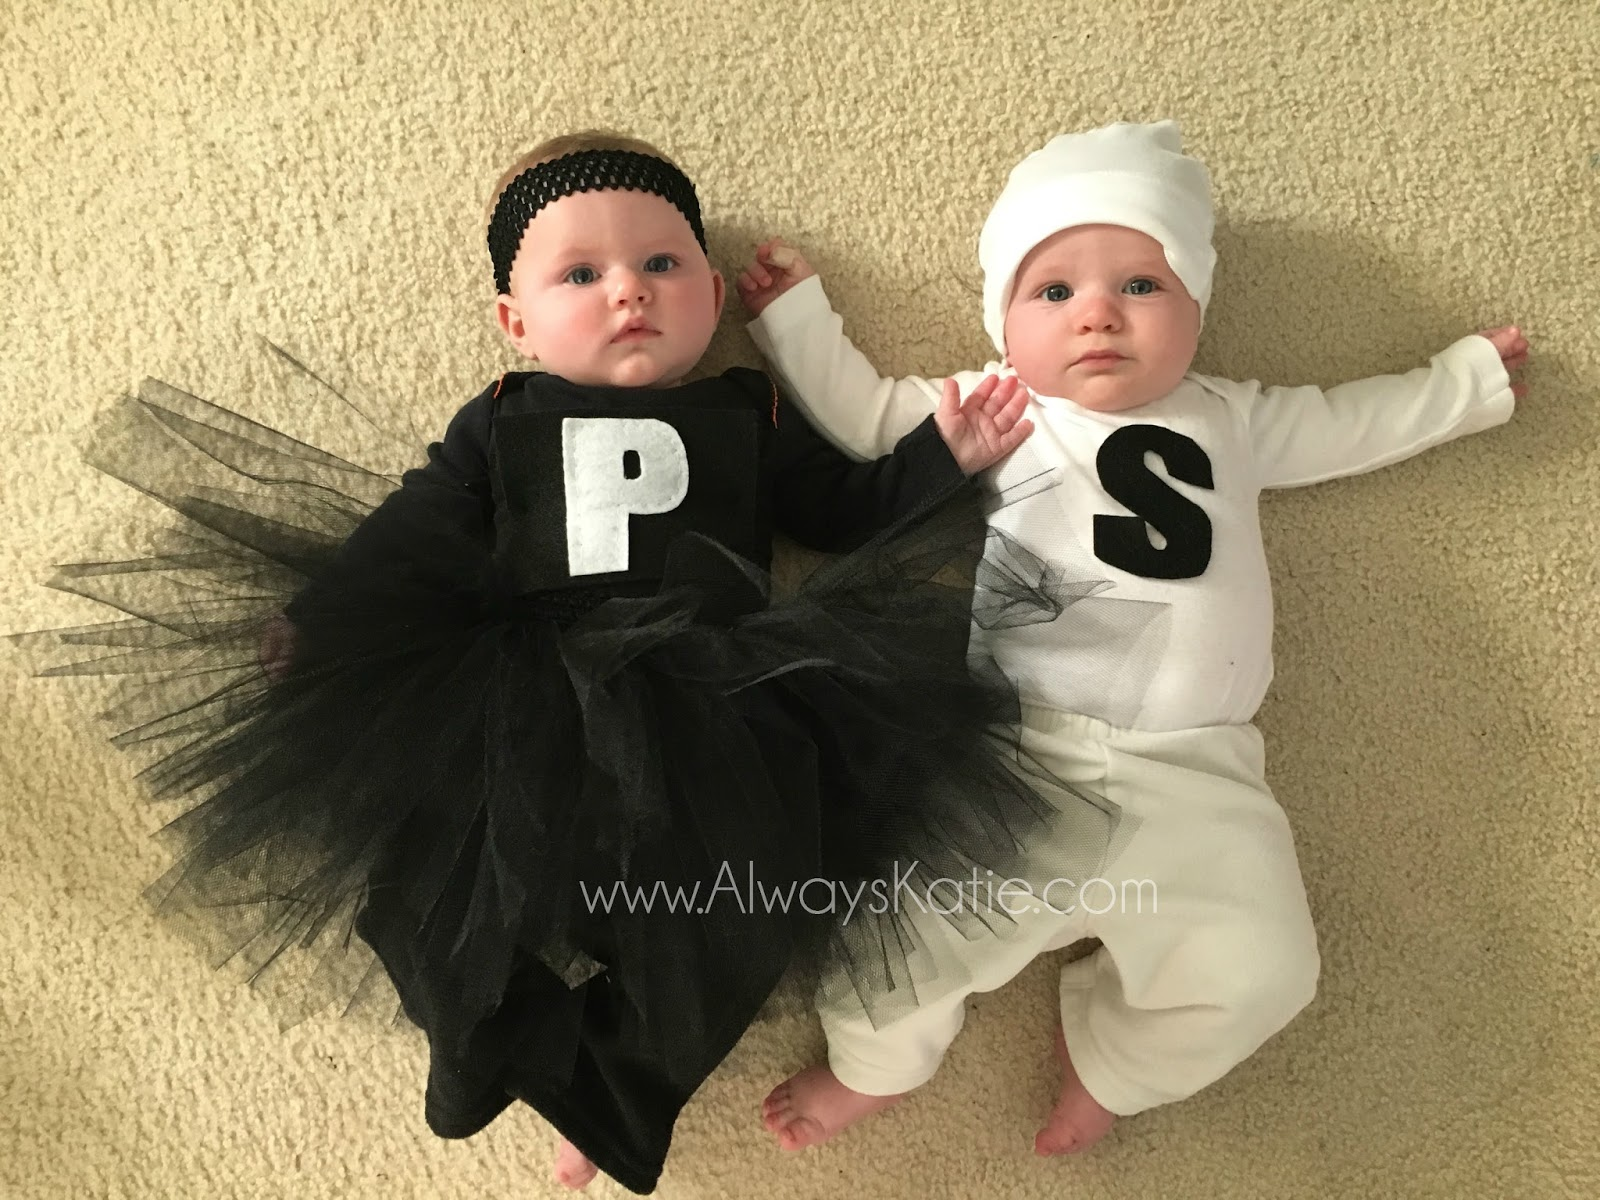 Twin Halloween Costumes - Salt and Pepper Shakers  sc 1 st  Always Katie : halloween costumes for twins  - Germanpascual.Com